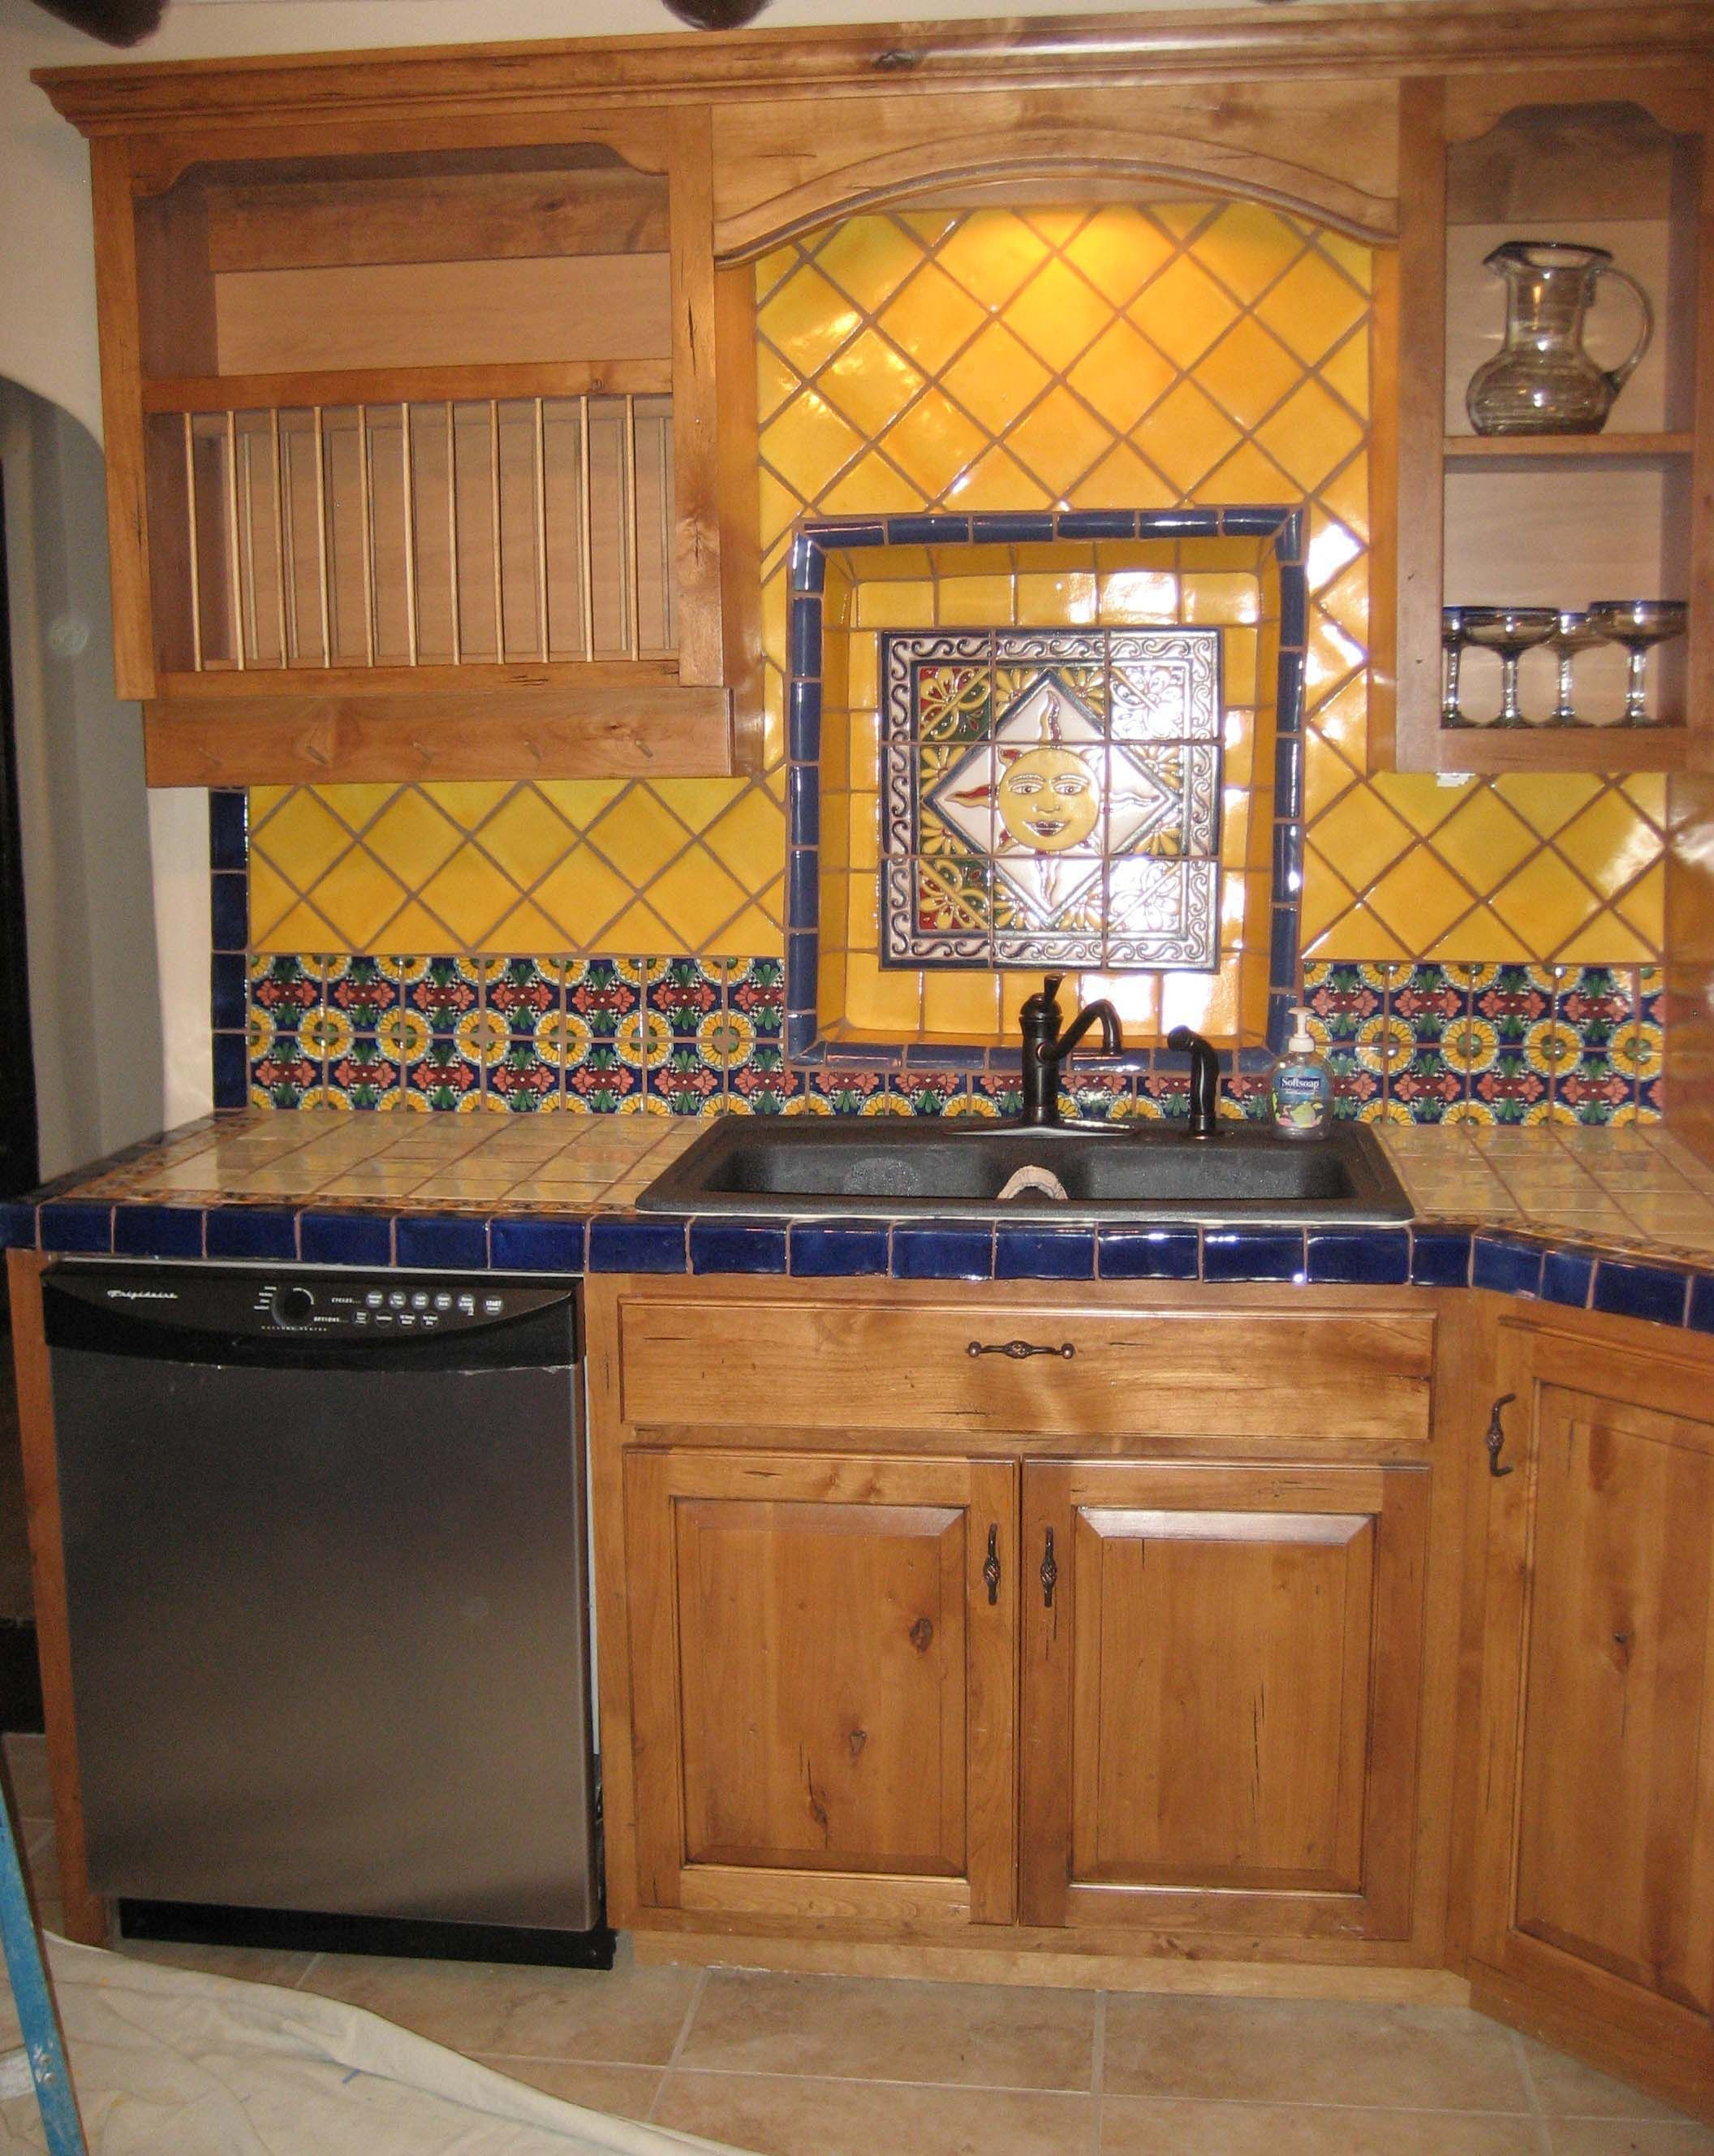 Southwest Style Kitchen Cabinets 2020 In 2020 Mexican Style Kitchens Kitchen Cabinet Styles Kitchen Cabinets